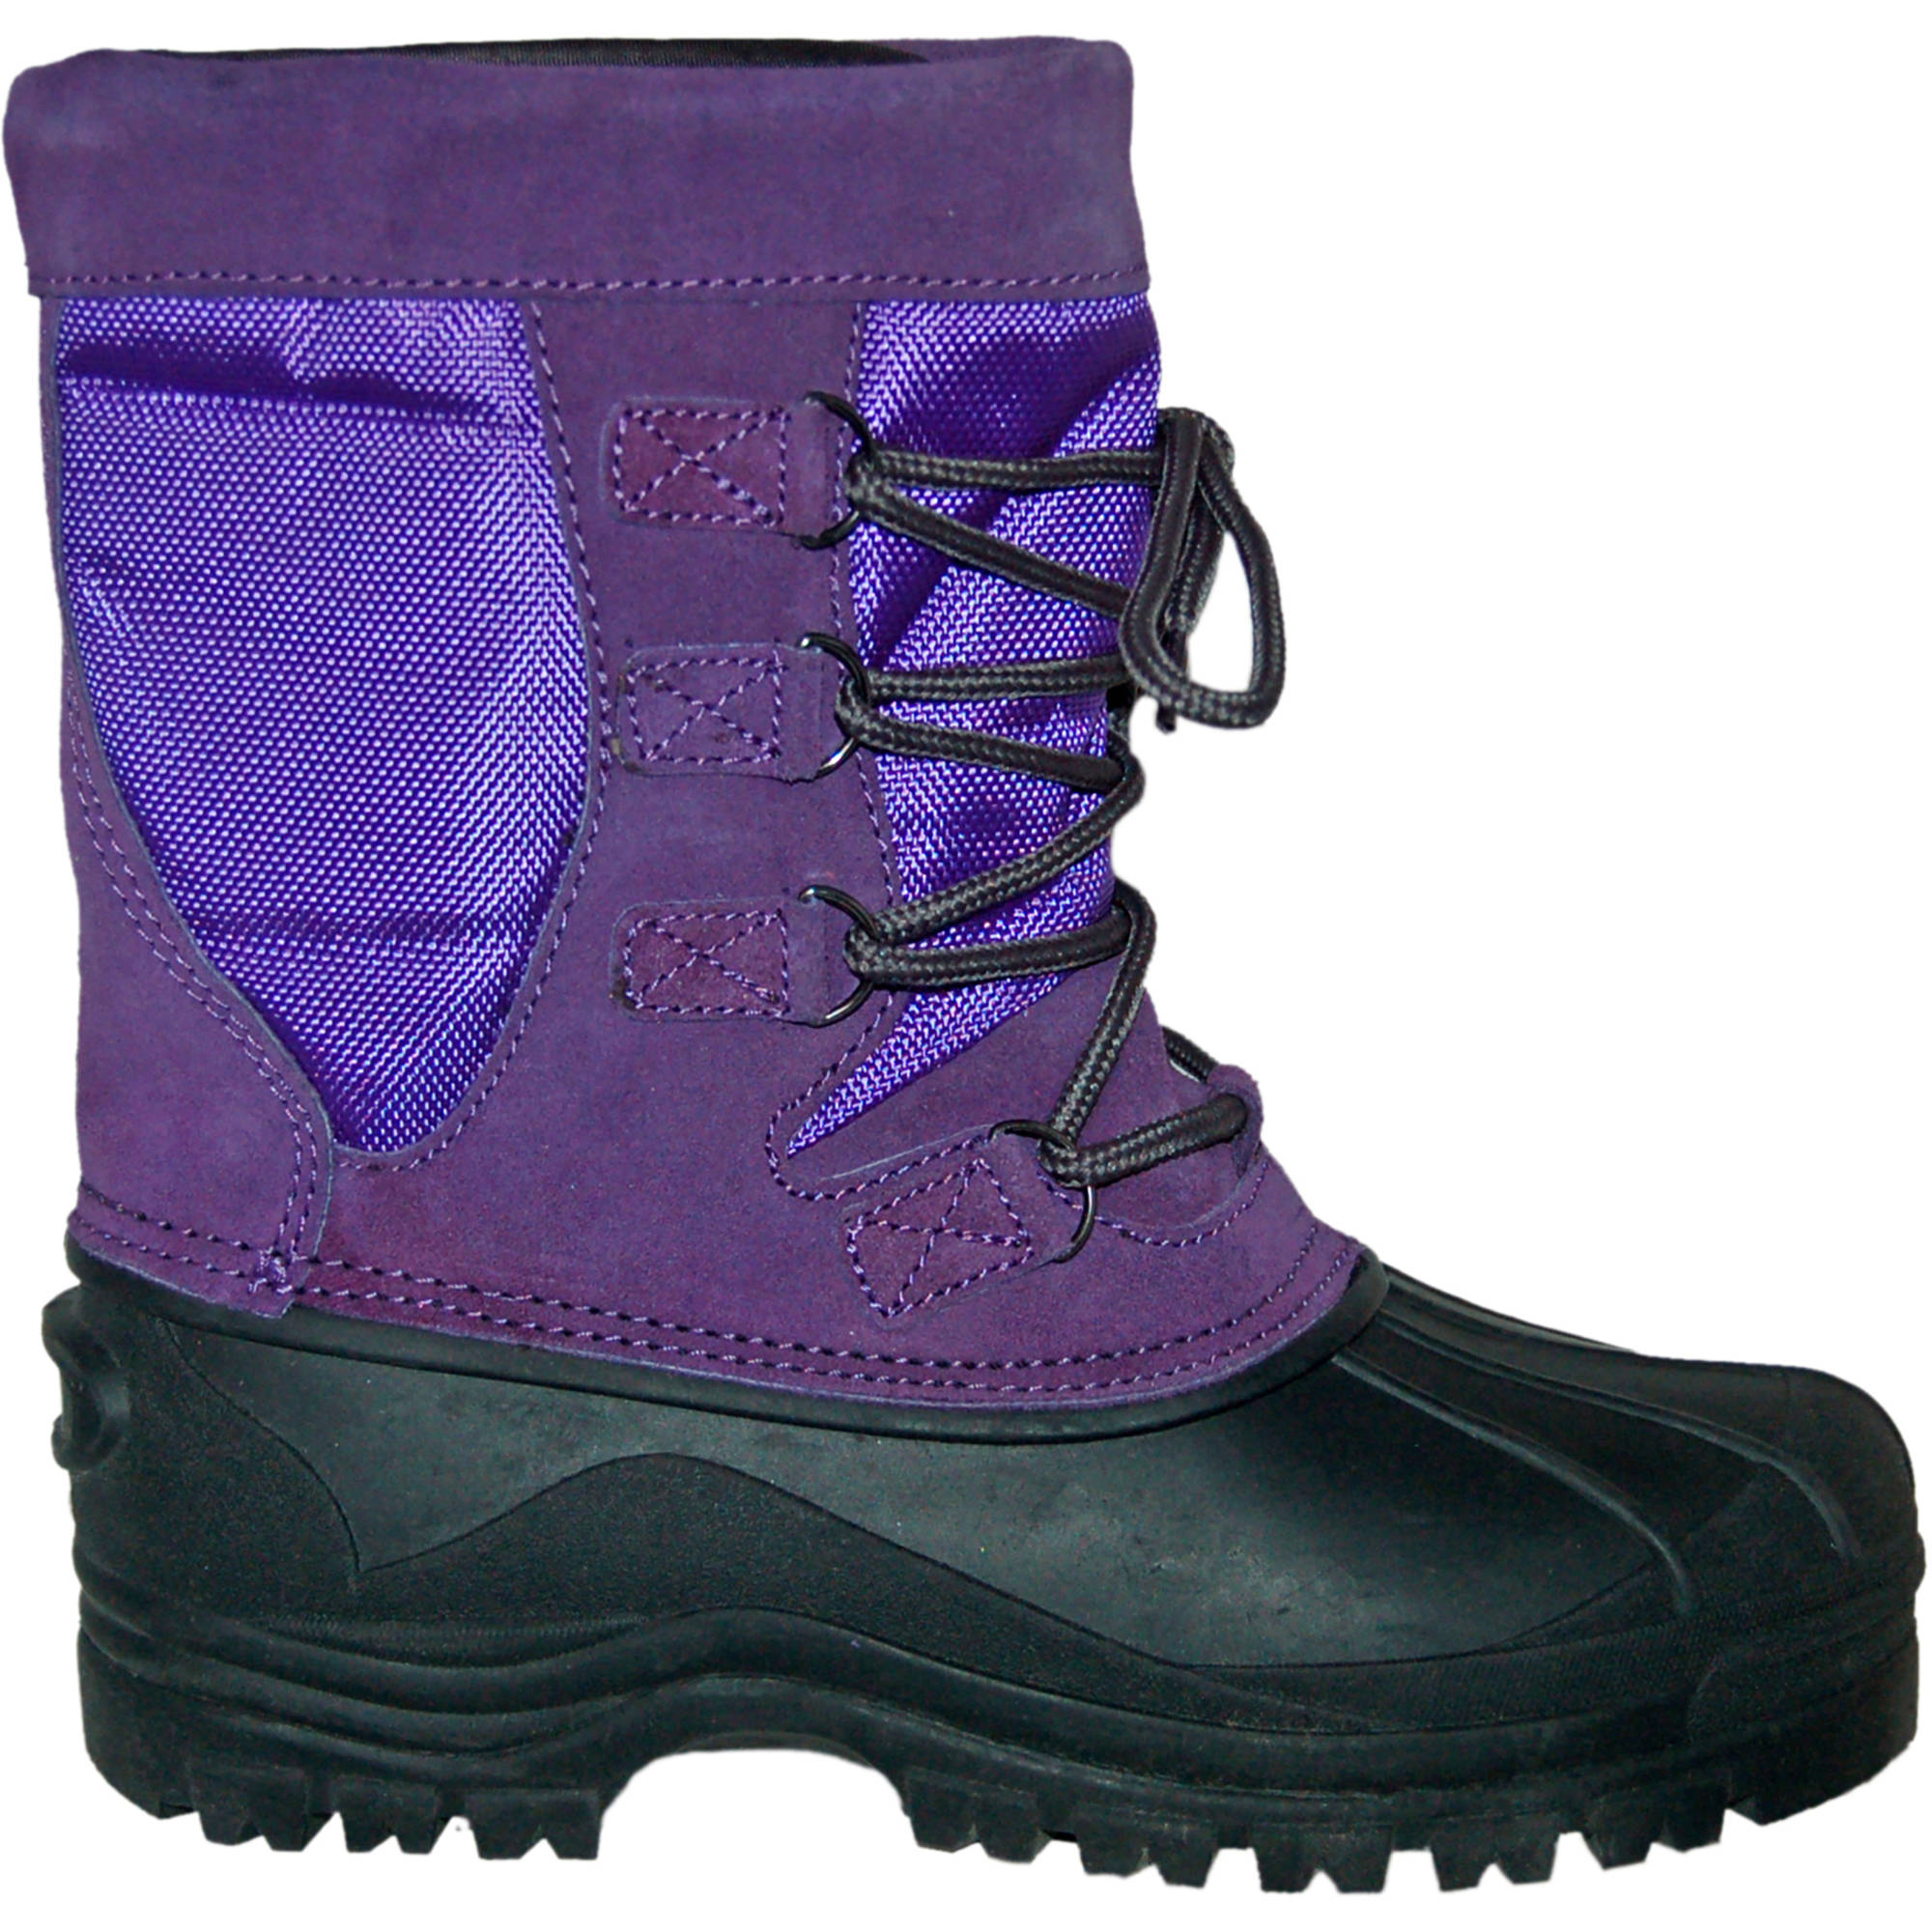 BERRY Girls Purple Lace Up Warm Winter Snow Boots